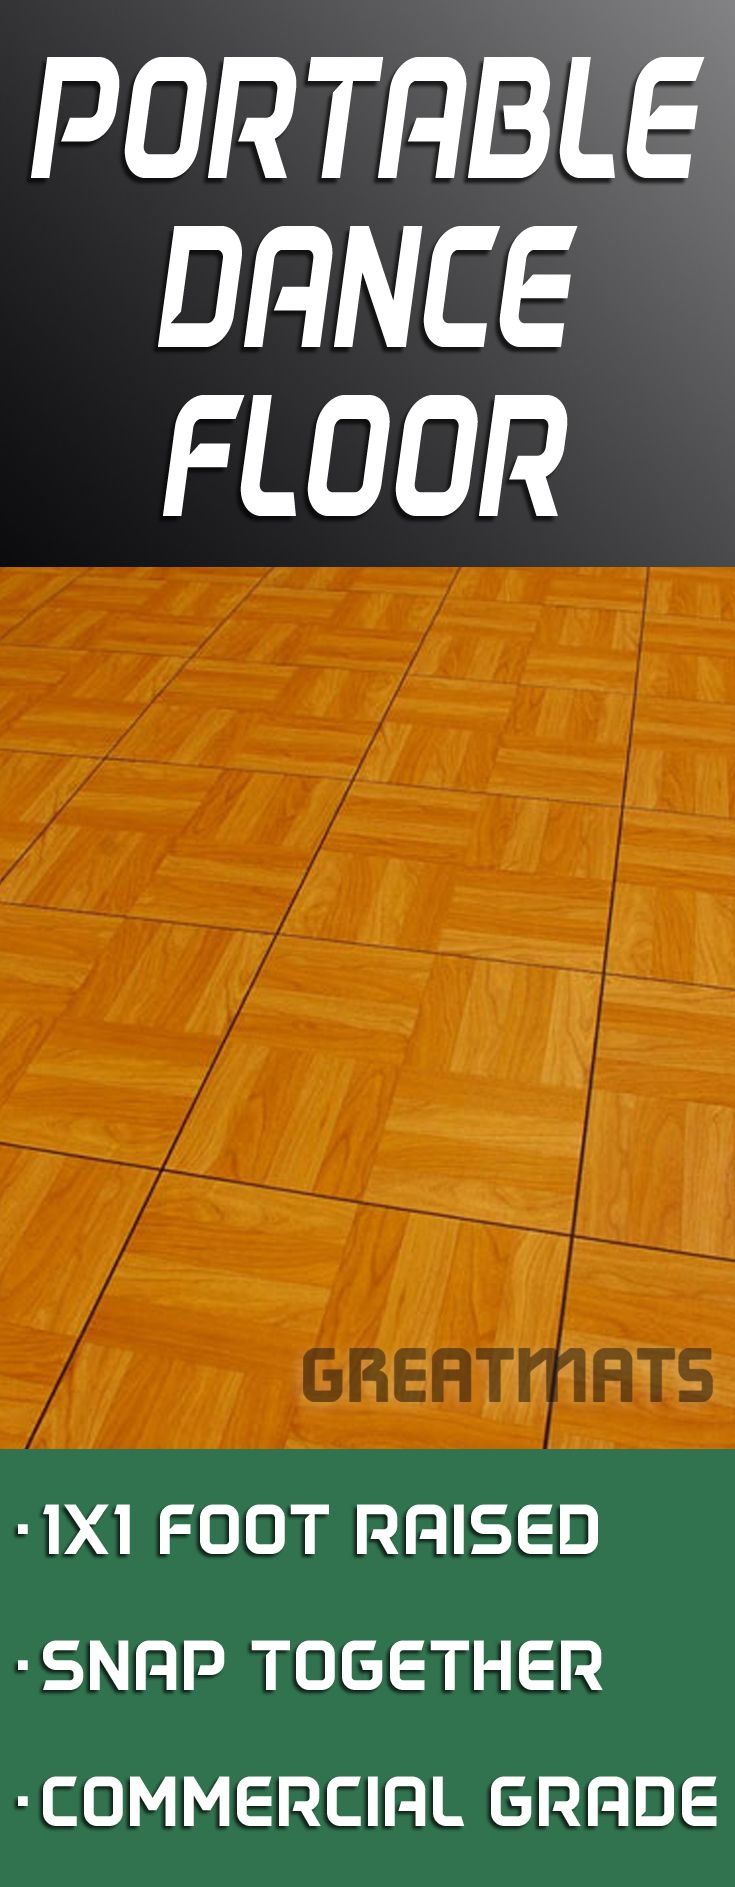 Greatmats portable dance floor tiles feature a commercial grade vinyl surface over a raised base and snap together over any hard, flat surface.